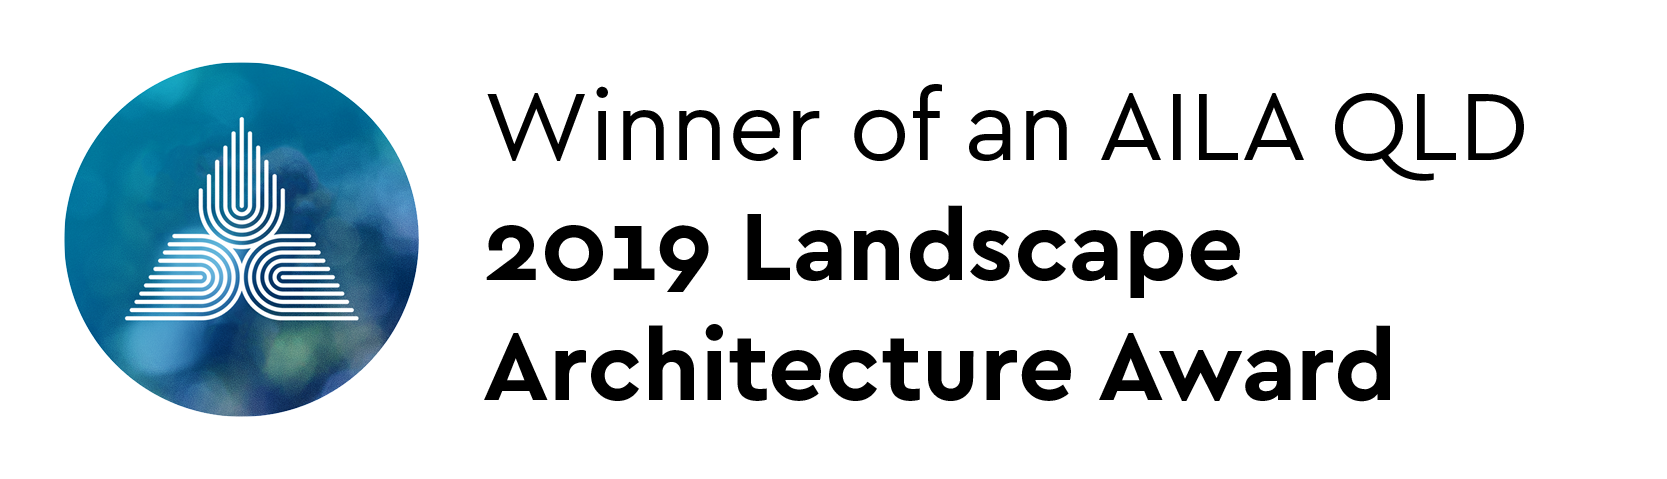 QLD Landscape Architecture Award Winner eSignature.png